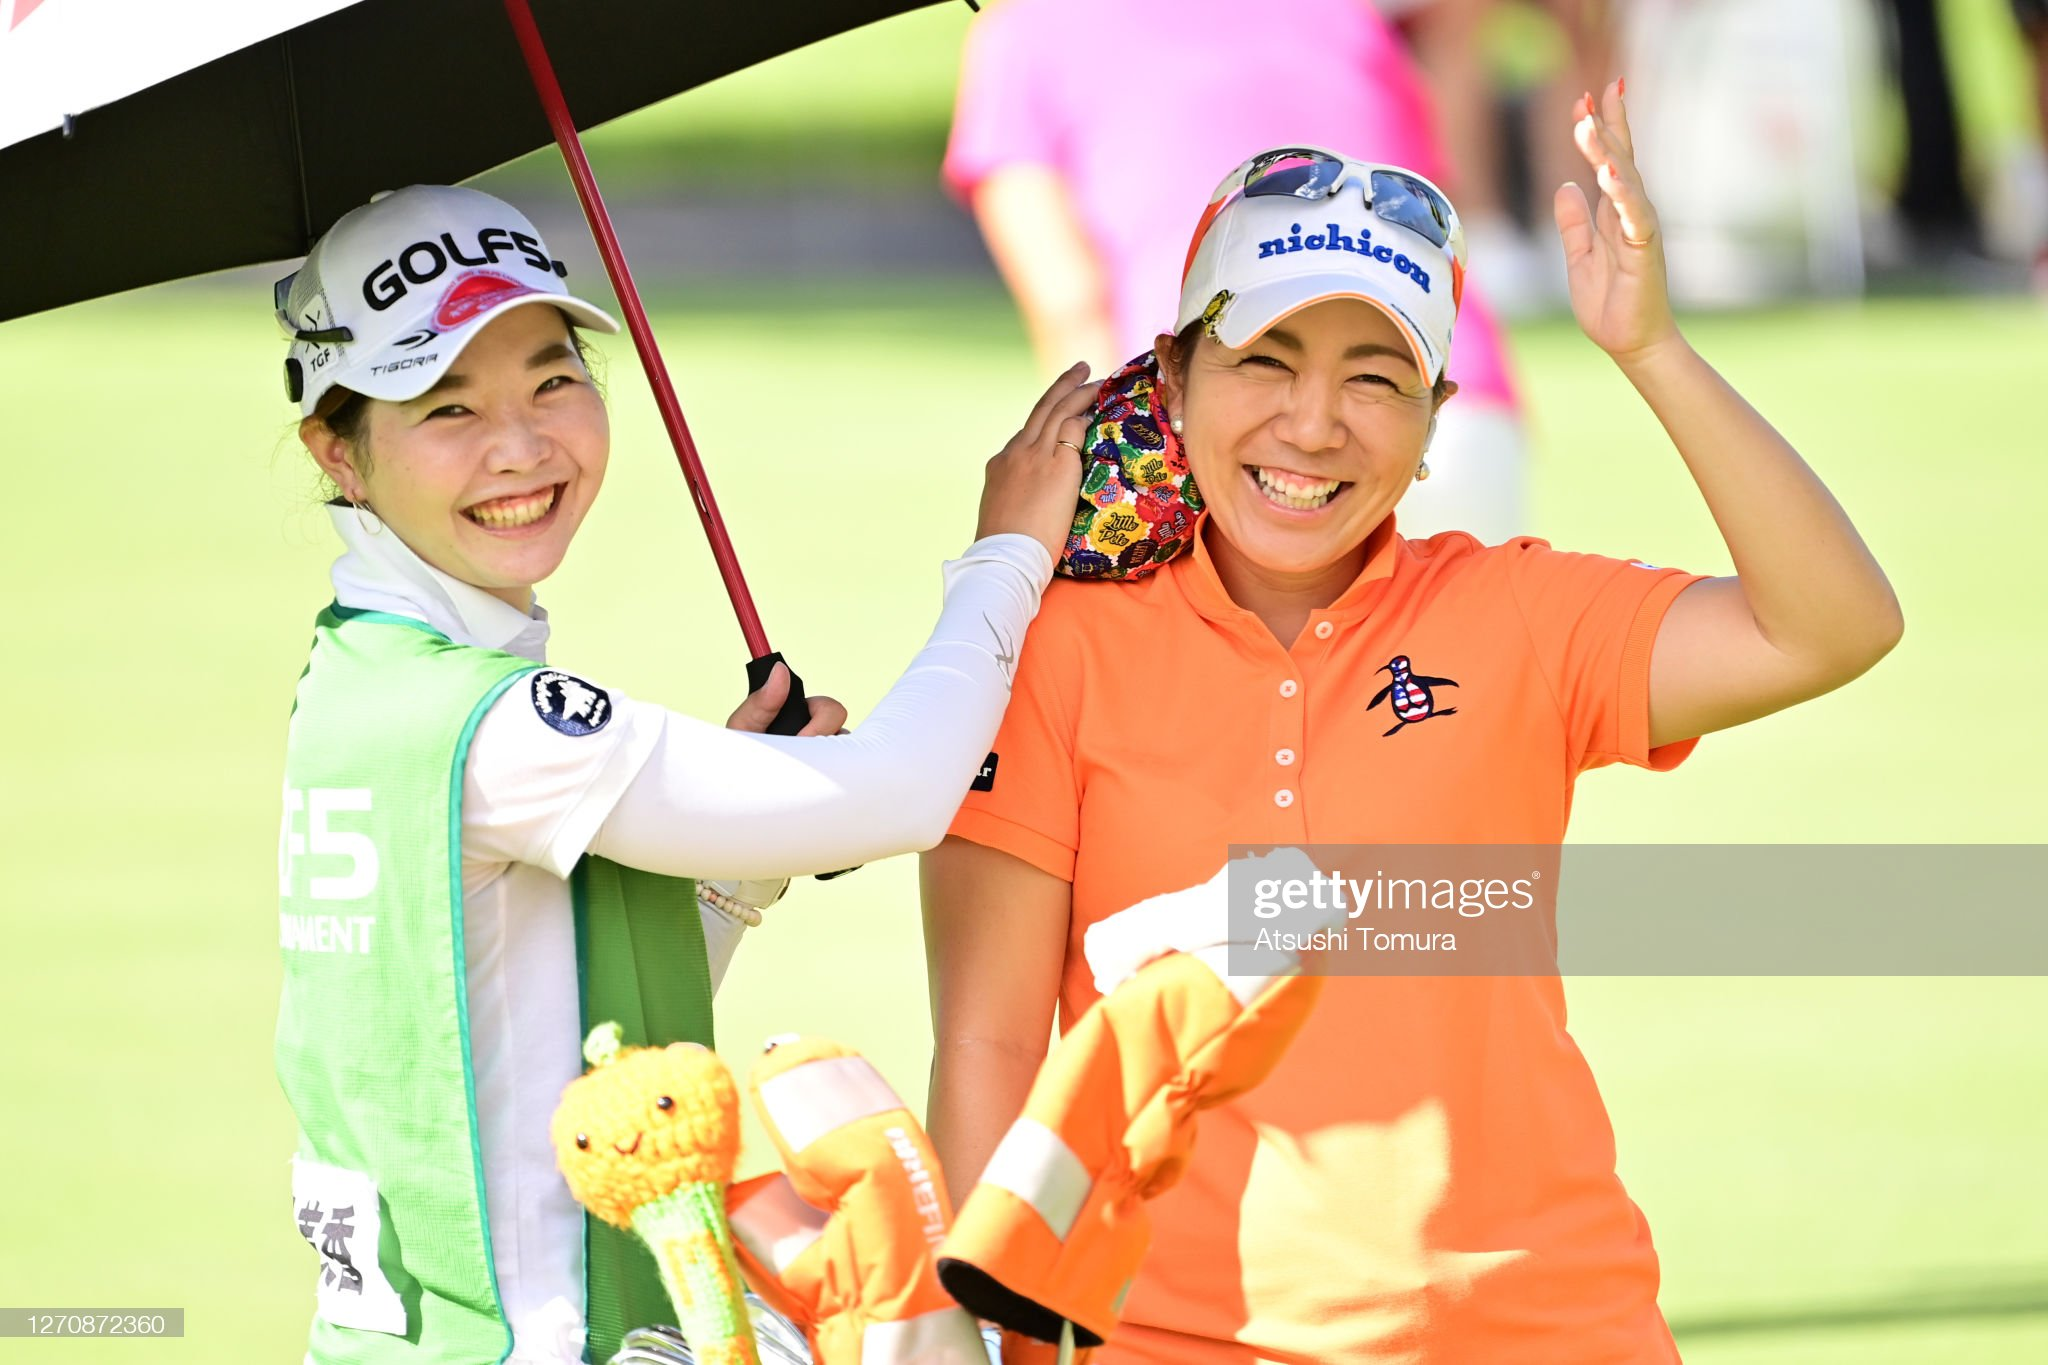 https://media.gettyimages.com/photos/mika-miyazato-of-japan-waves-on-the-1st-tee-during-the-final-round-of-picture-id1270872360?s=2048x2048